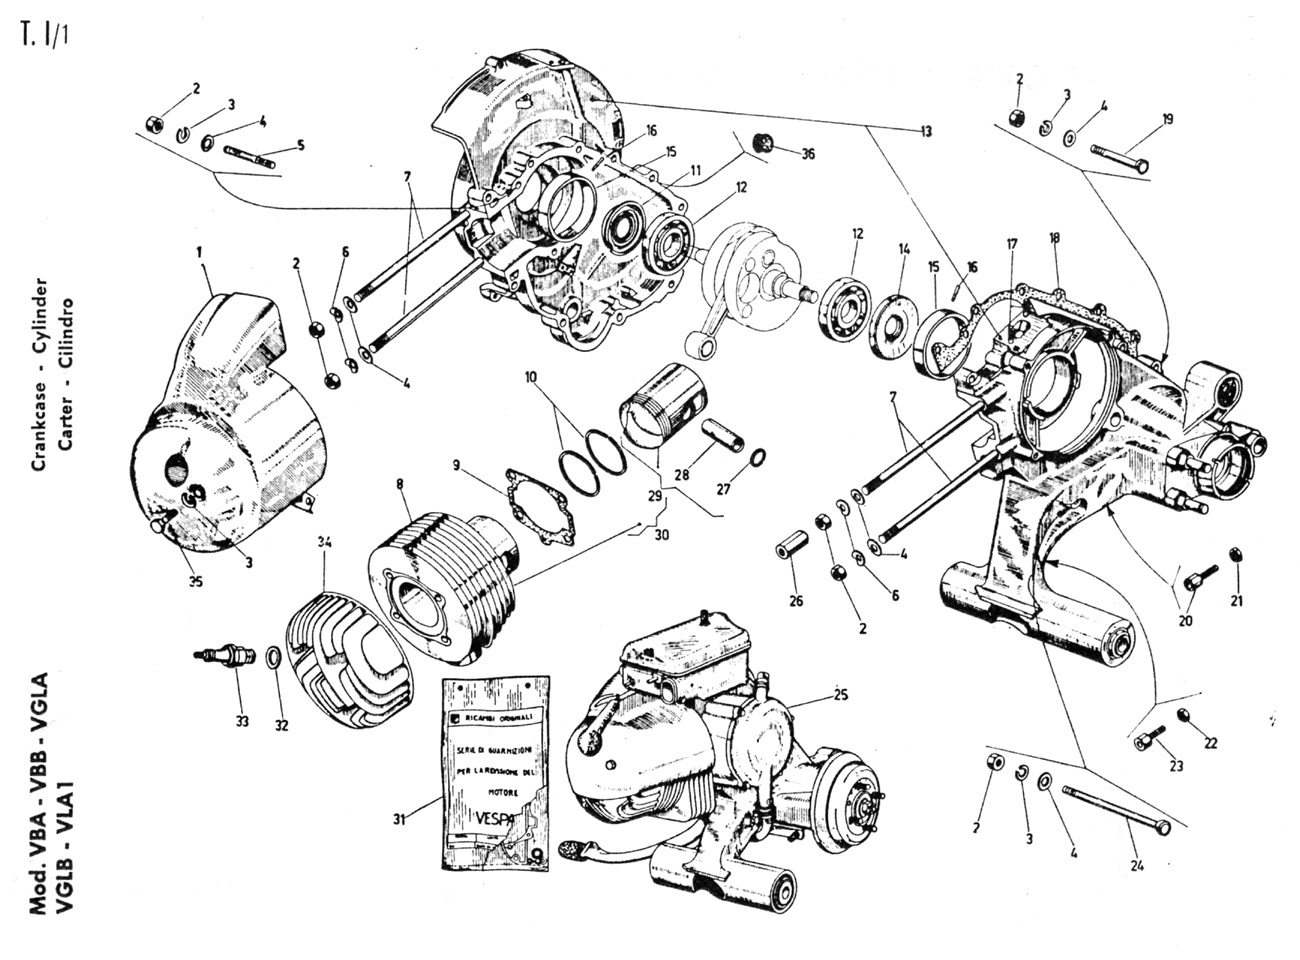 Vintage Diagram Brain Labeled With Functions Vespa Parts Get Free Image About